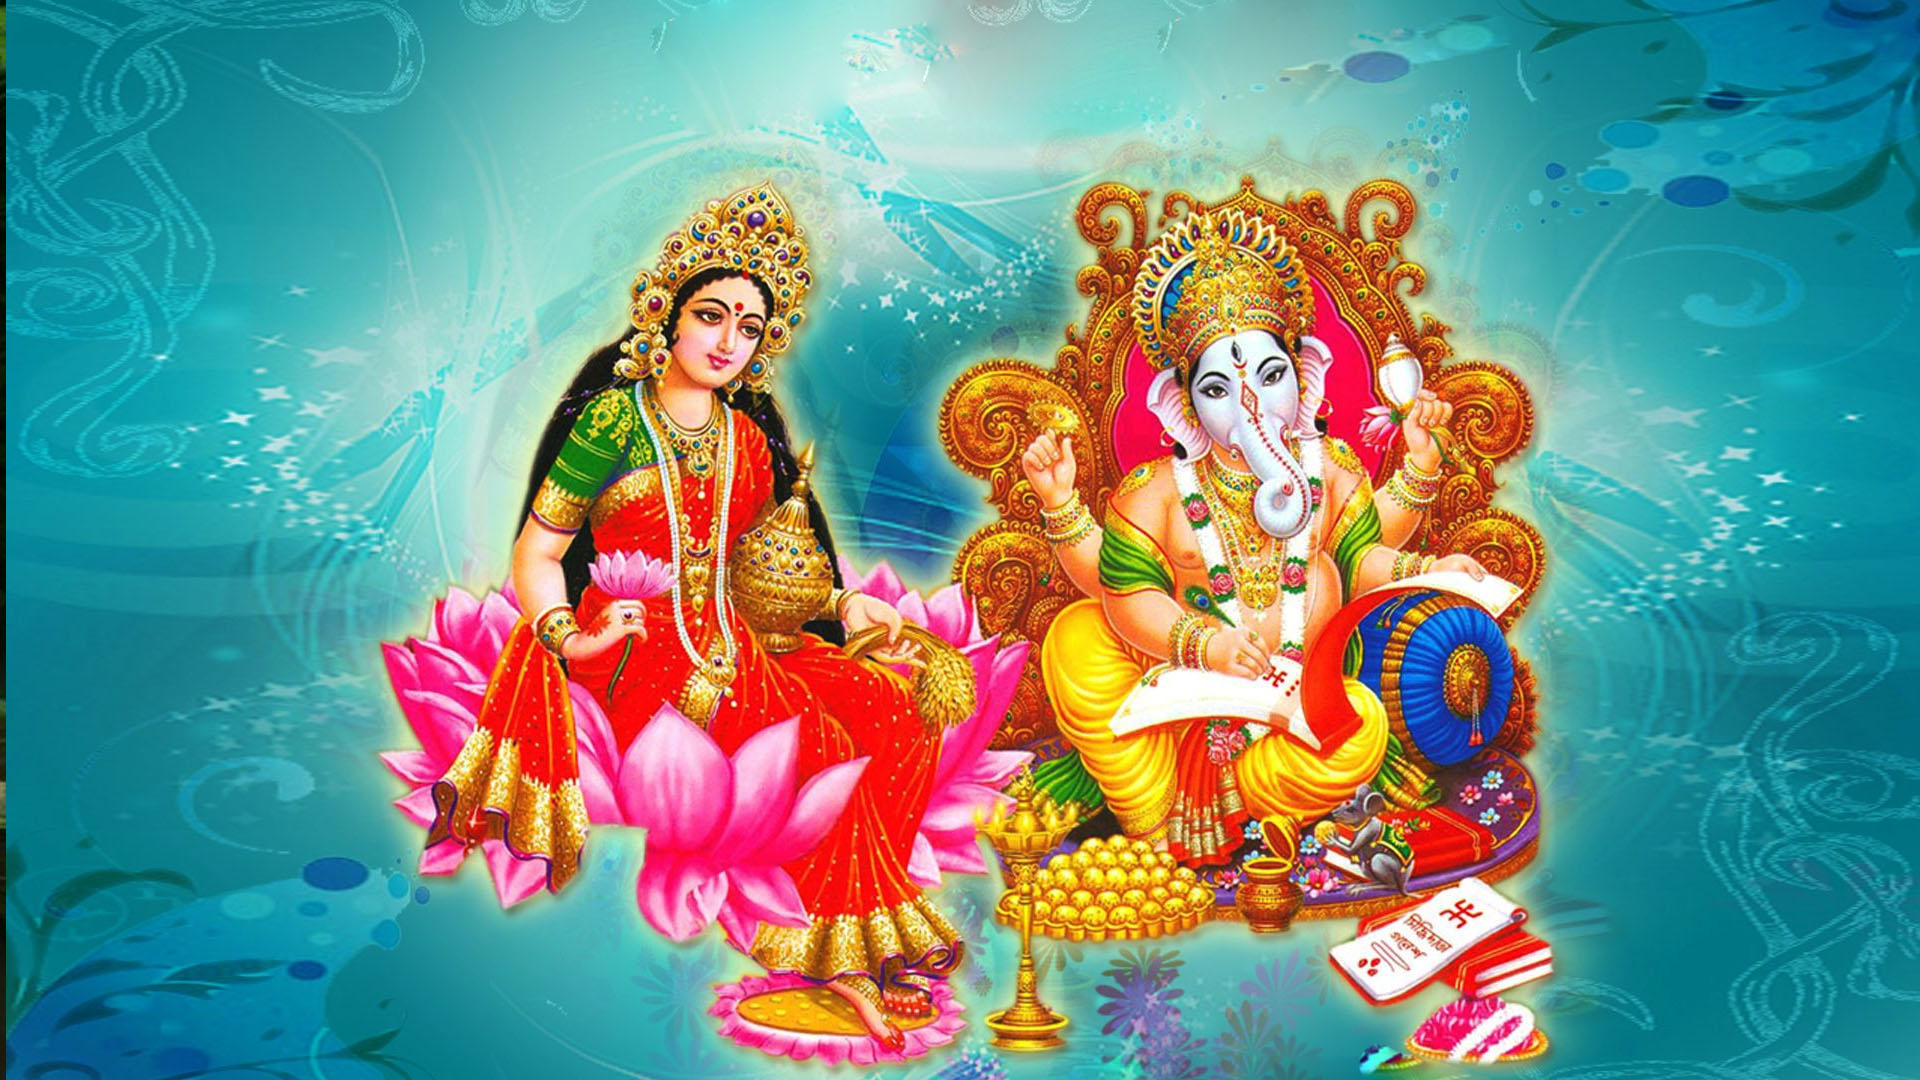 Laxmi Ganesh 3d Images Wallpapers Photos